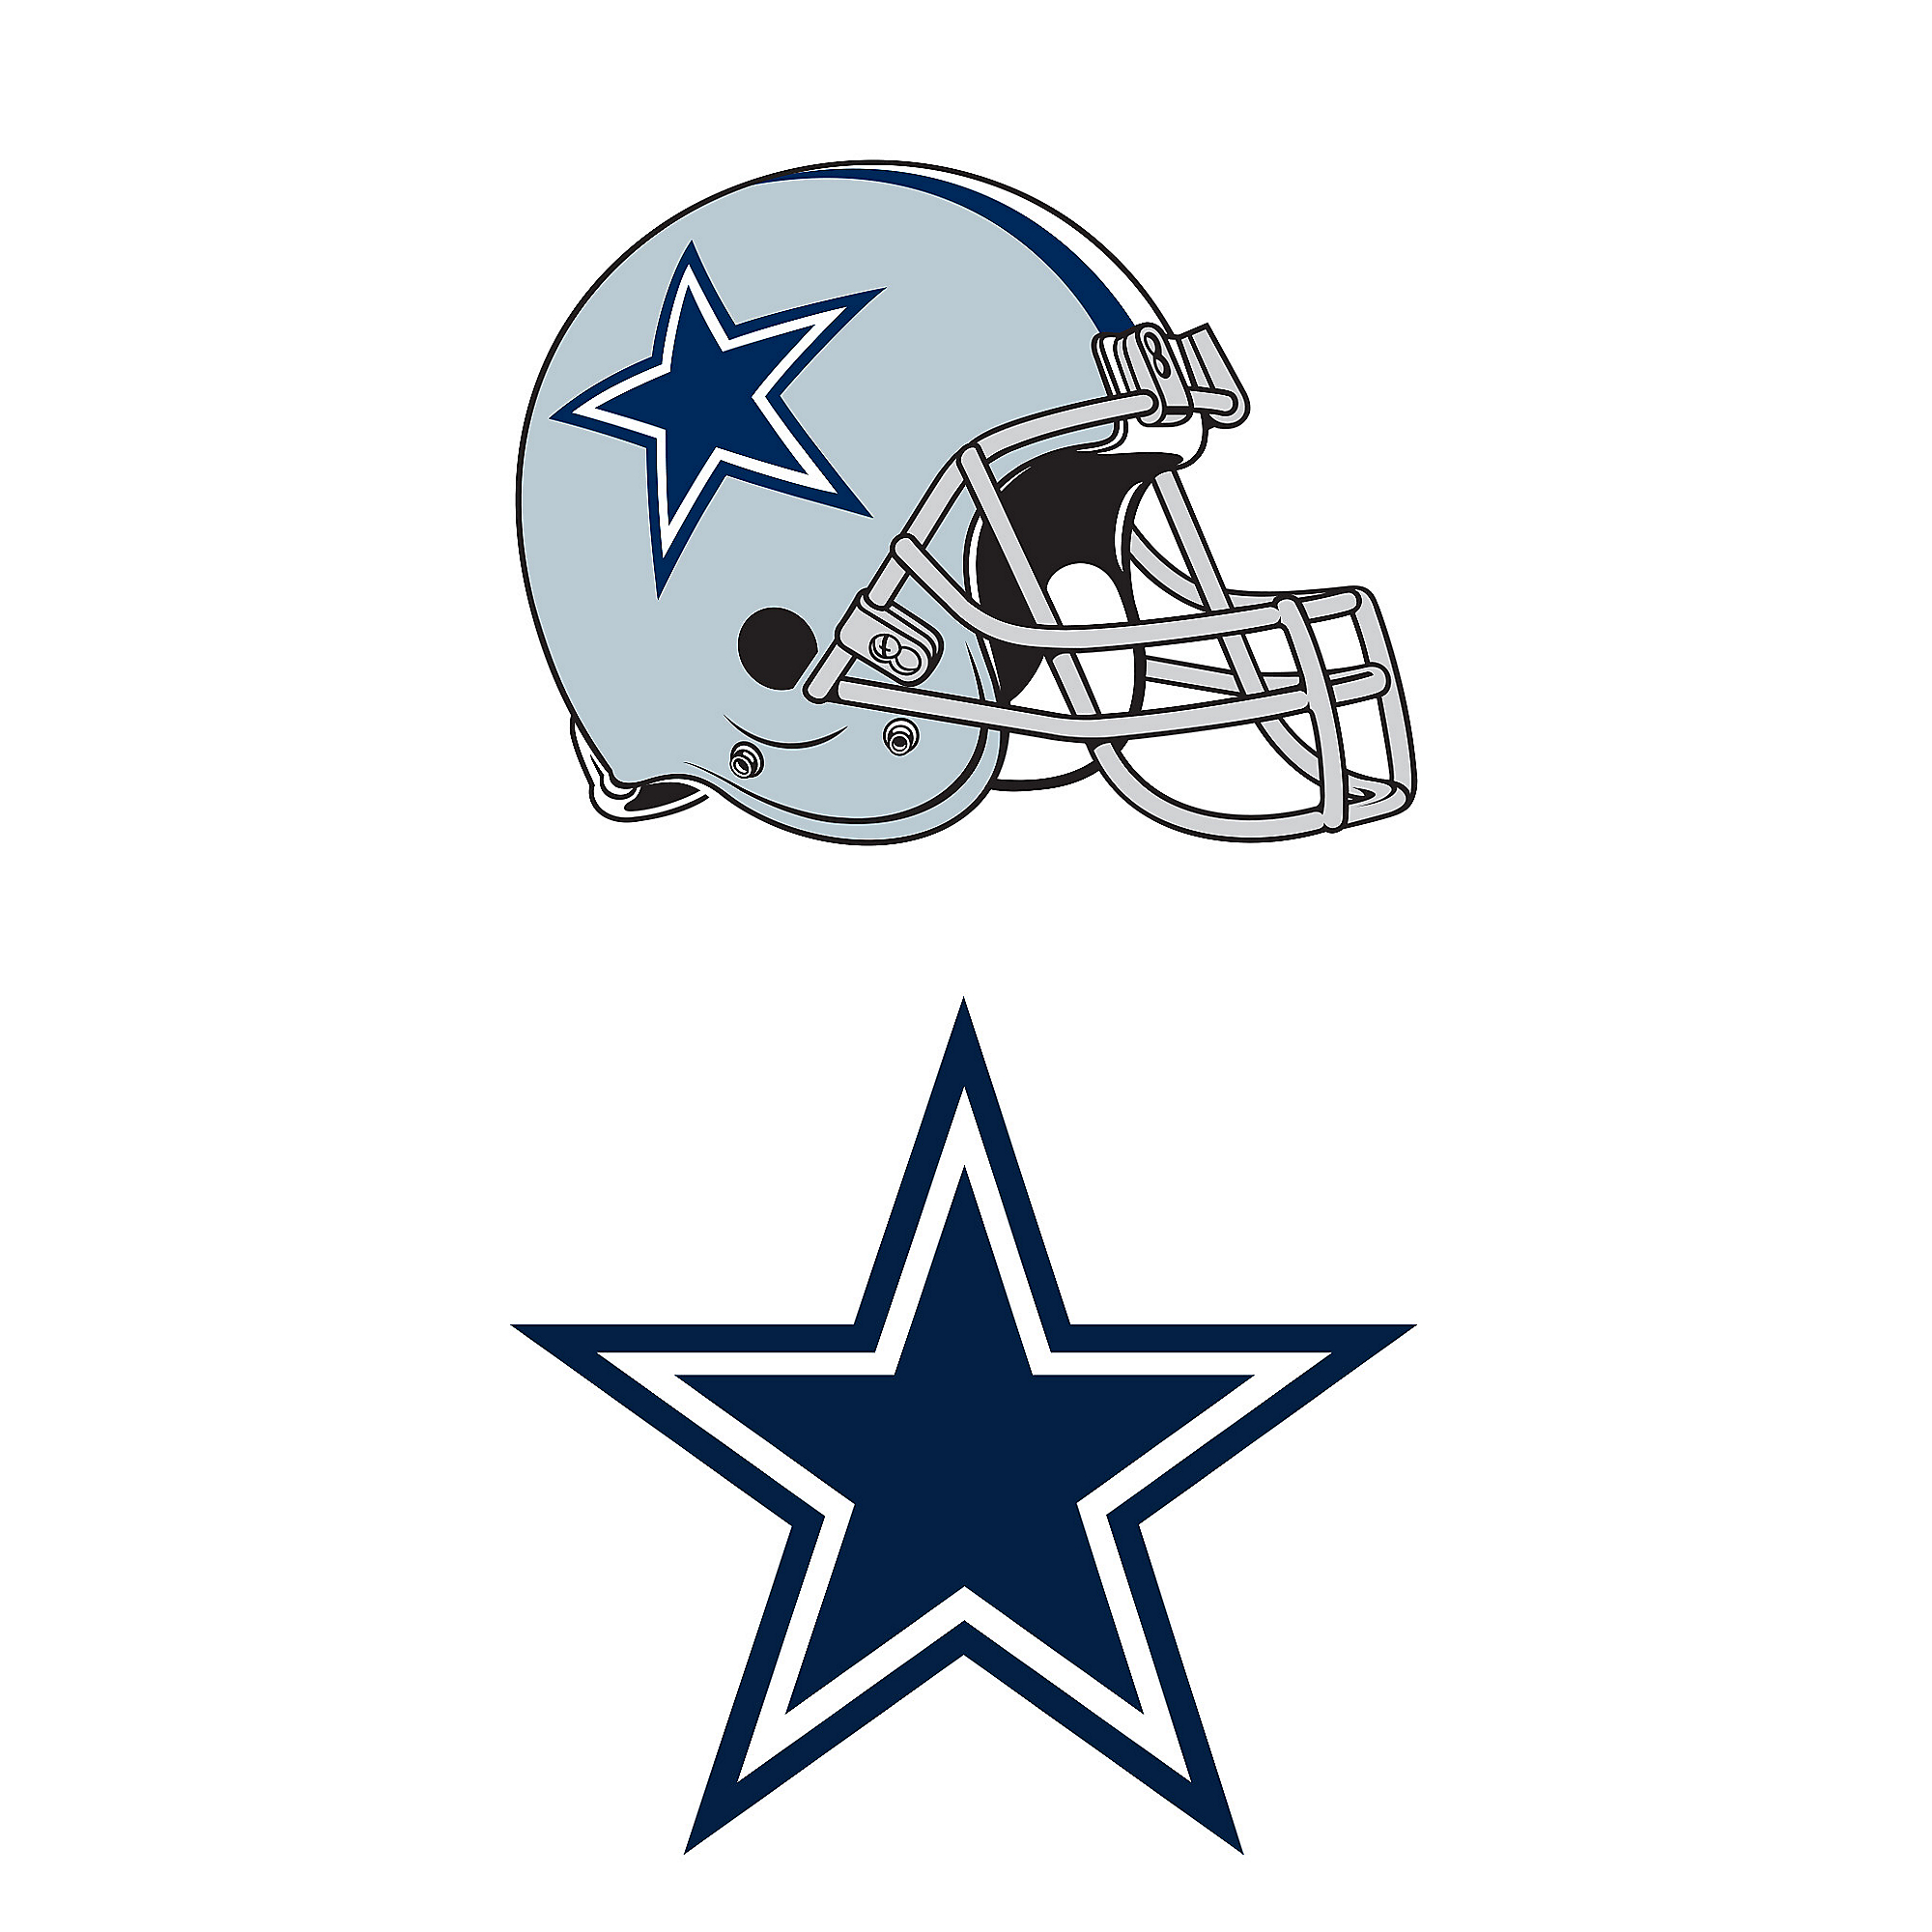 ed2d37e4 Dallas Cowboys Helmet & Logo Window Decal | Dallas Cowboys Pro Shop